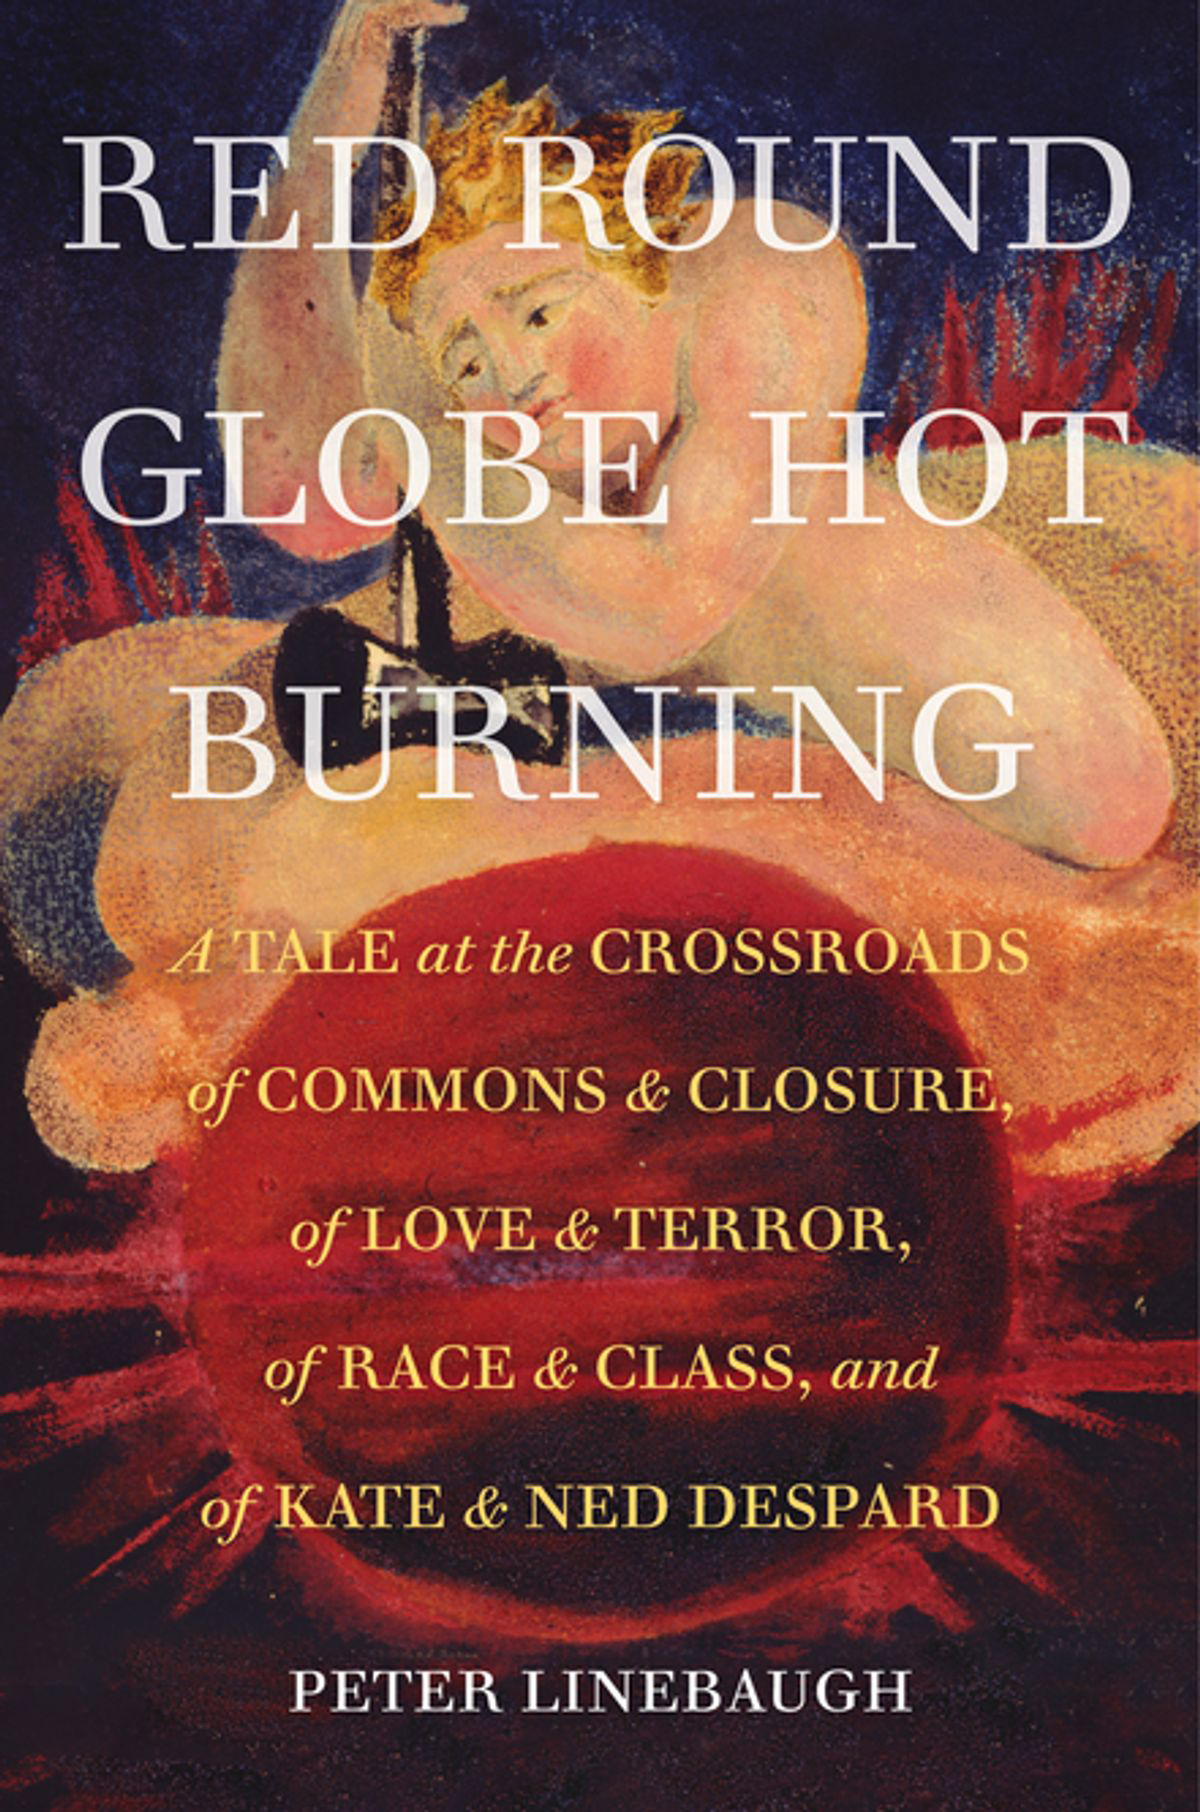 red-round-globe-hot-burning.jpg